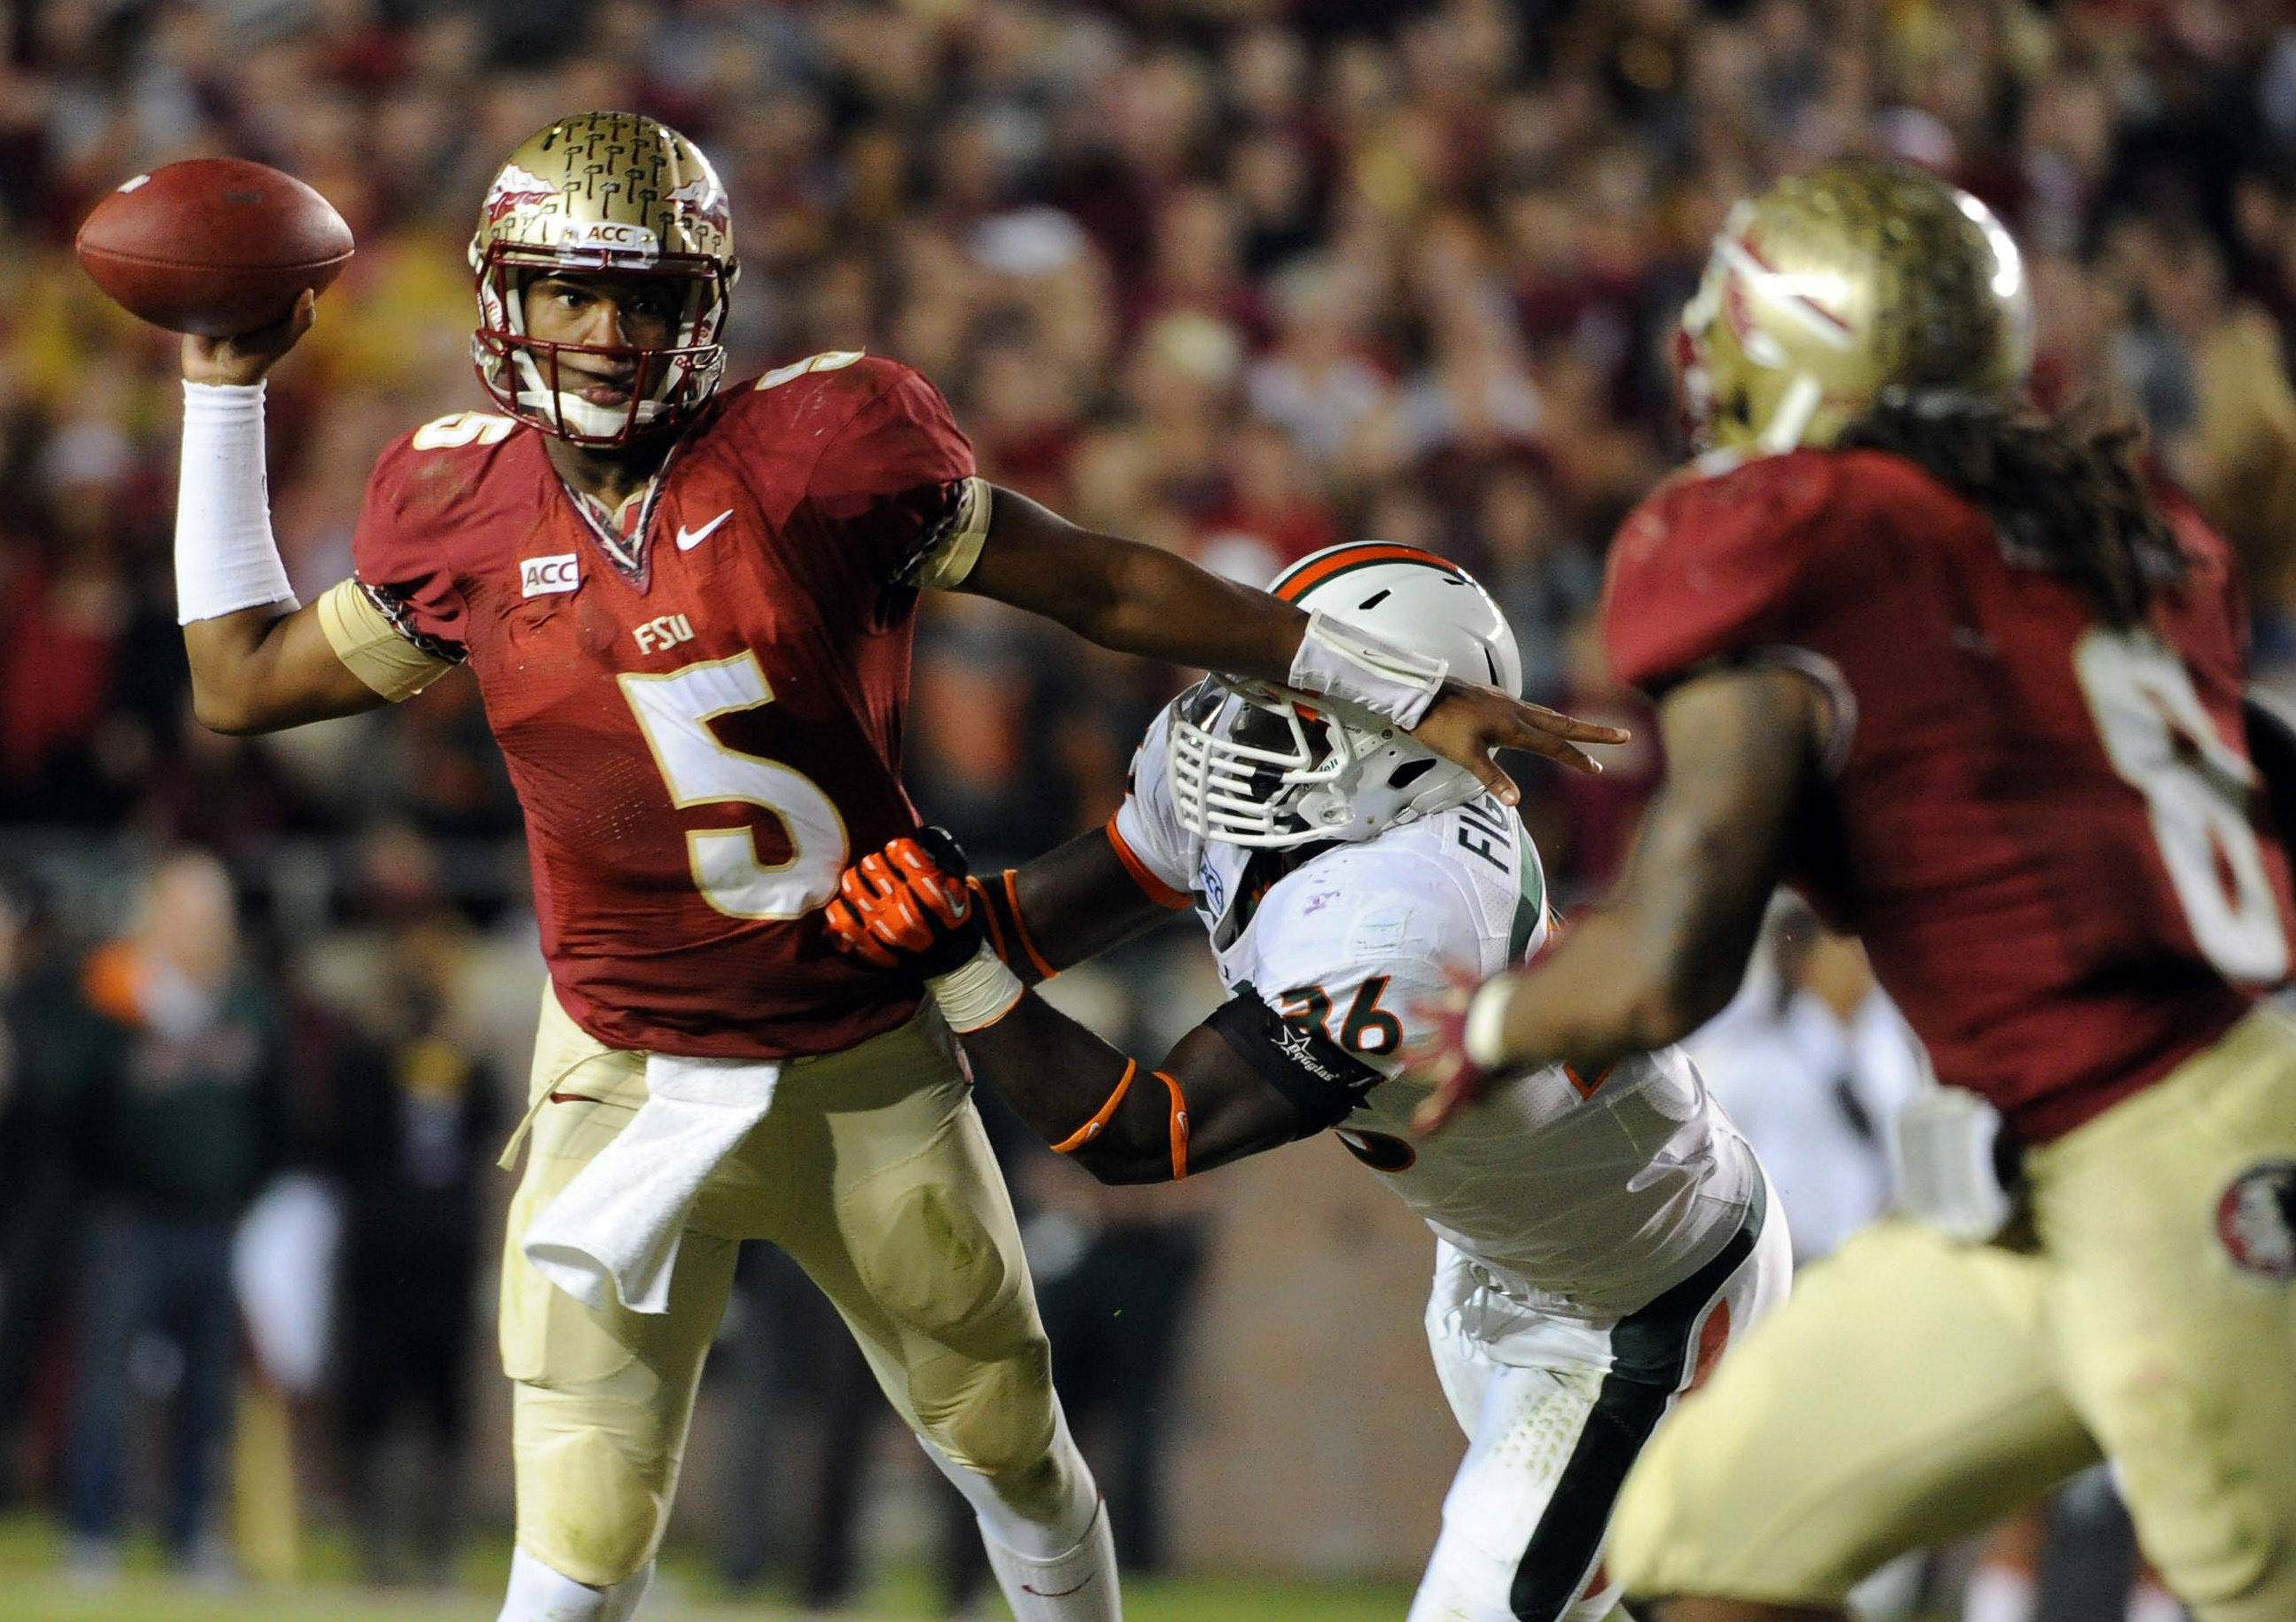 Florida State Seminoles quarterback Jameis Winston (5) evades Miami Hurricanes linebacker Alex Figueroa (36) as he throws the ball during the second half at Doak Campbell Stadium. Mandatory Credit: Melina Vastola-USA TODAY Sports